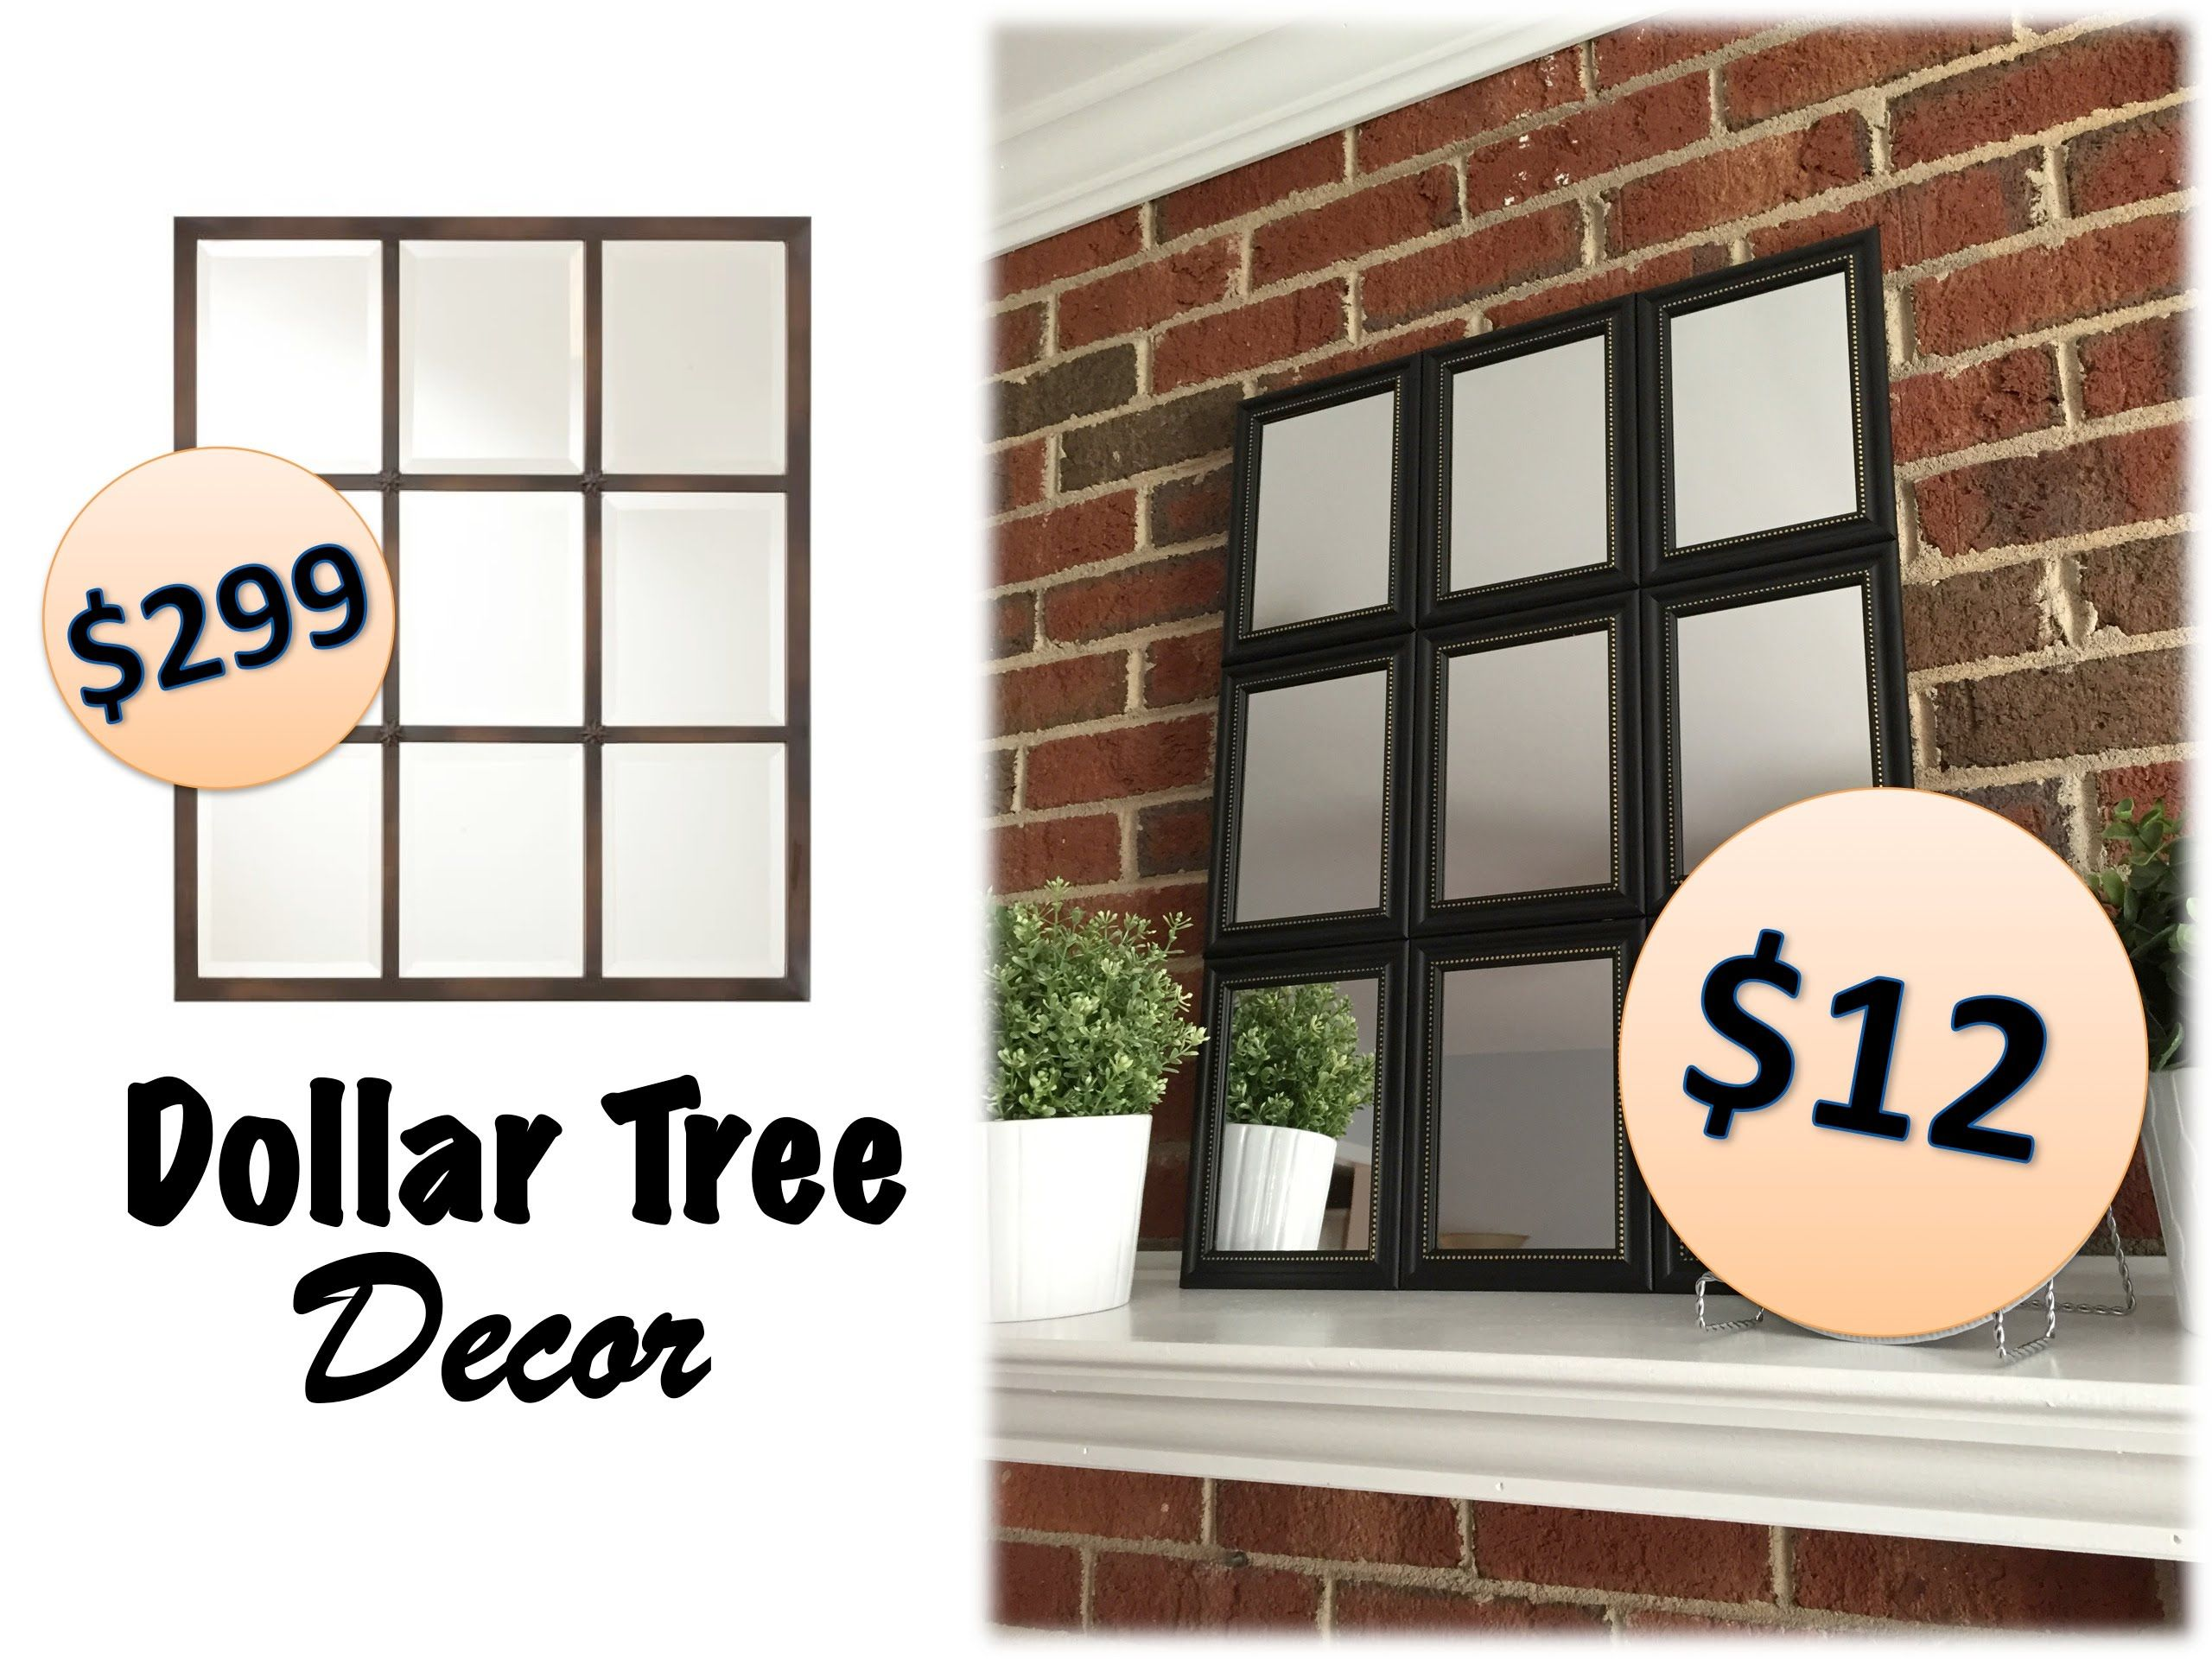 Dollar Tree Decor   Pottery Barn Dupes. Dollar Tree Decor   Pottery Barn Dupes   DECOR   Pinterest